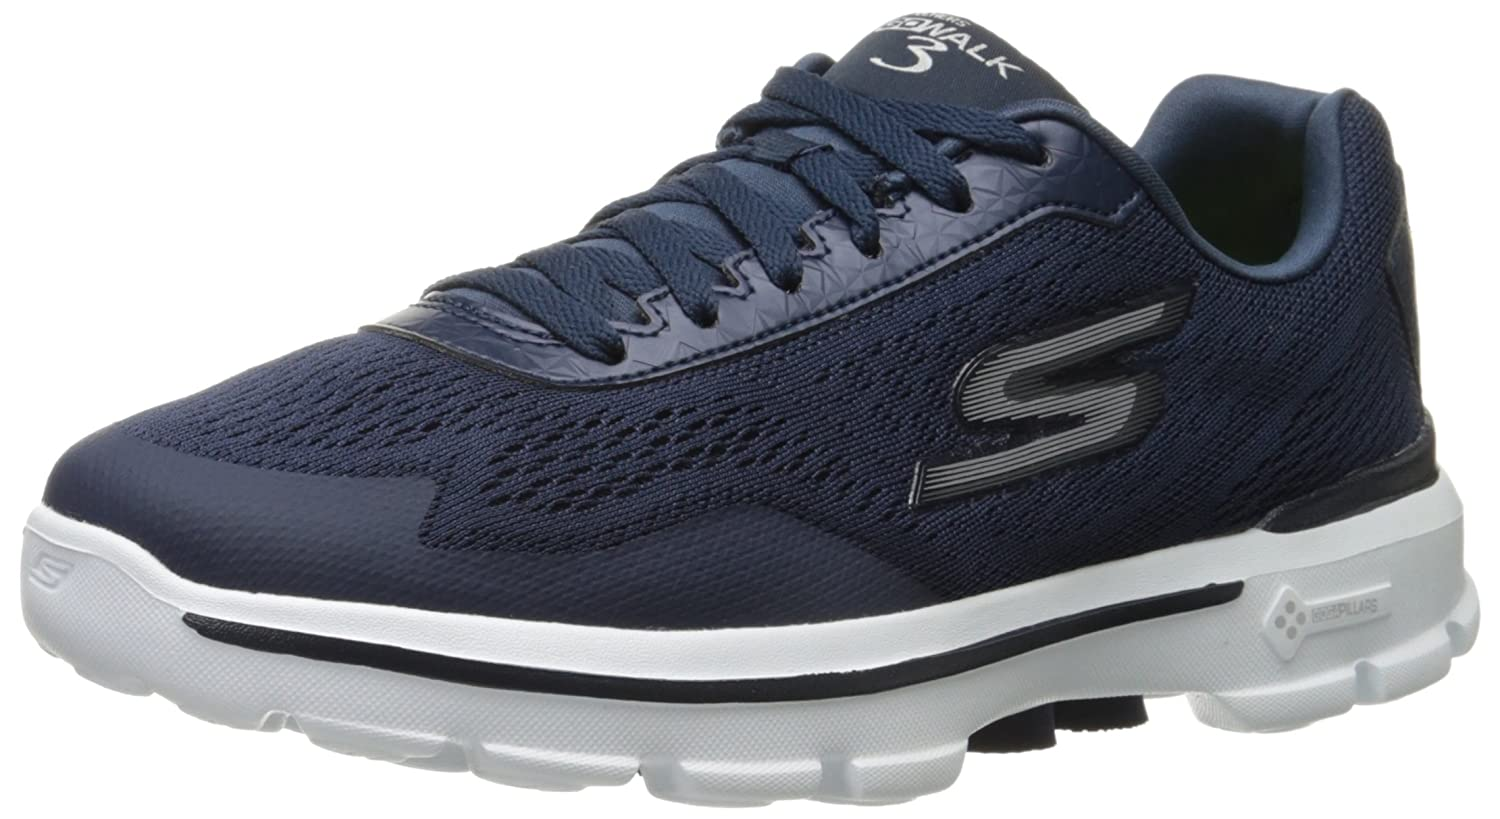 Skechers Performance Men's Go Walk 3 Reaction Walking Shoe 54050